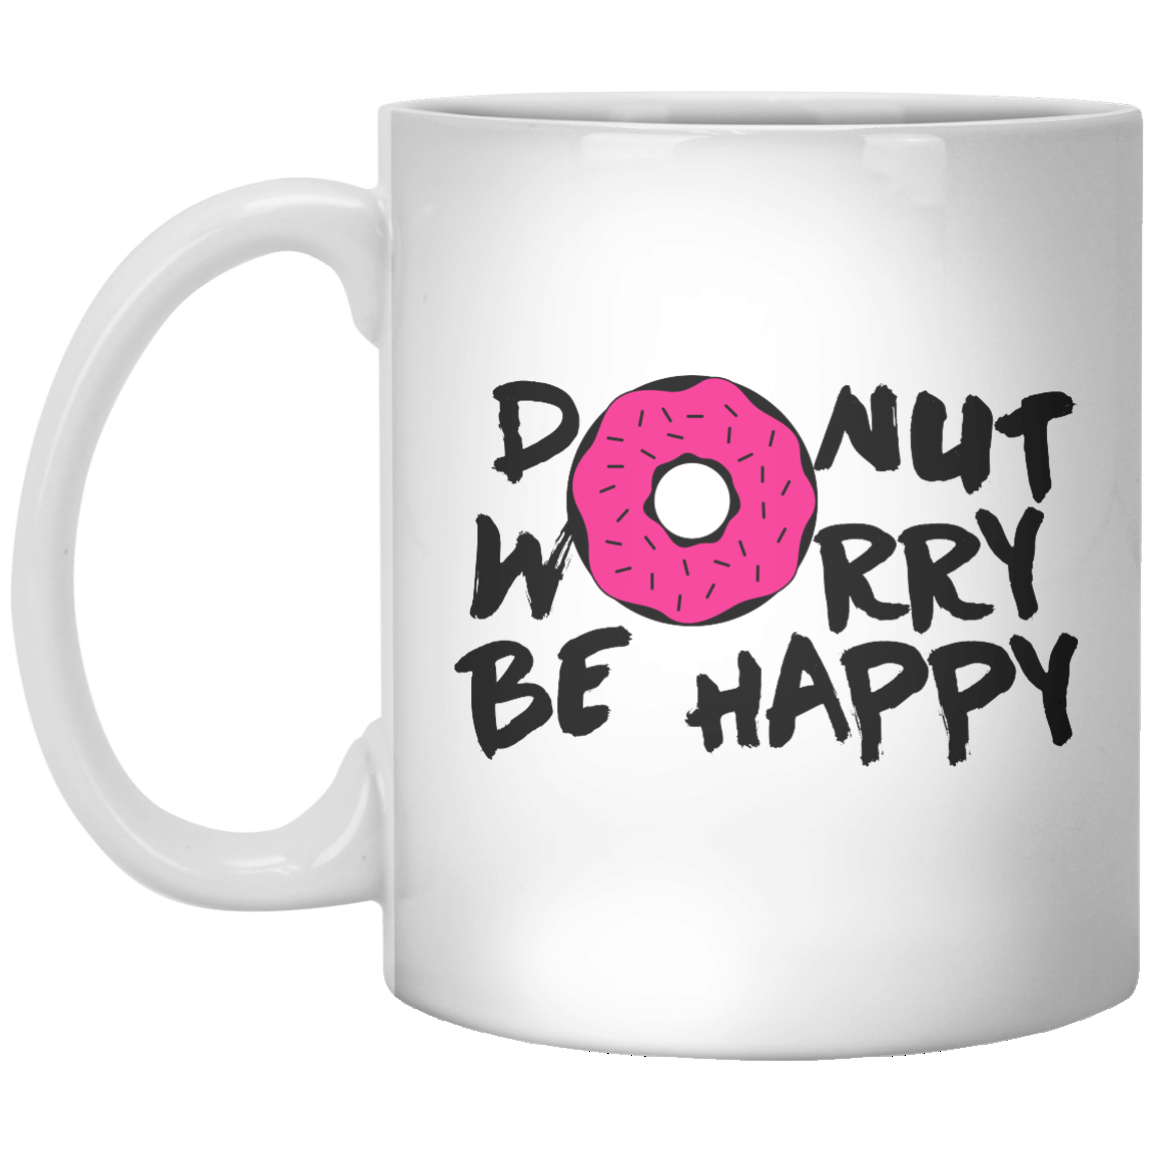 Donut Worry Be Happy - Shirtoopia